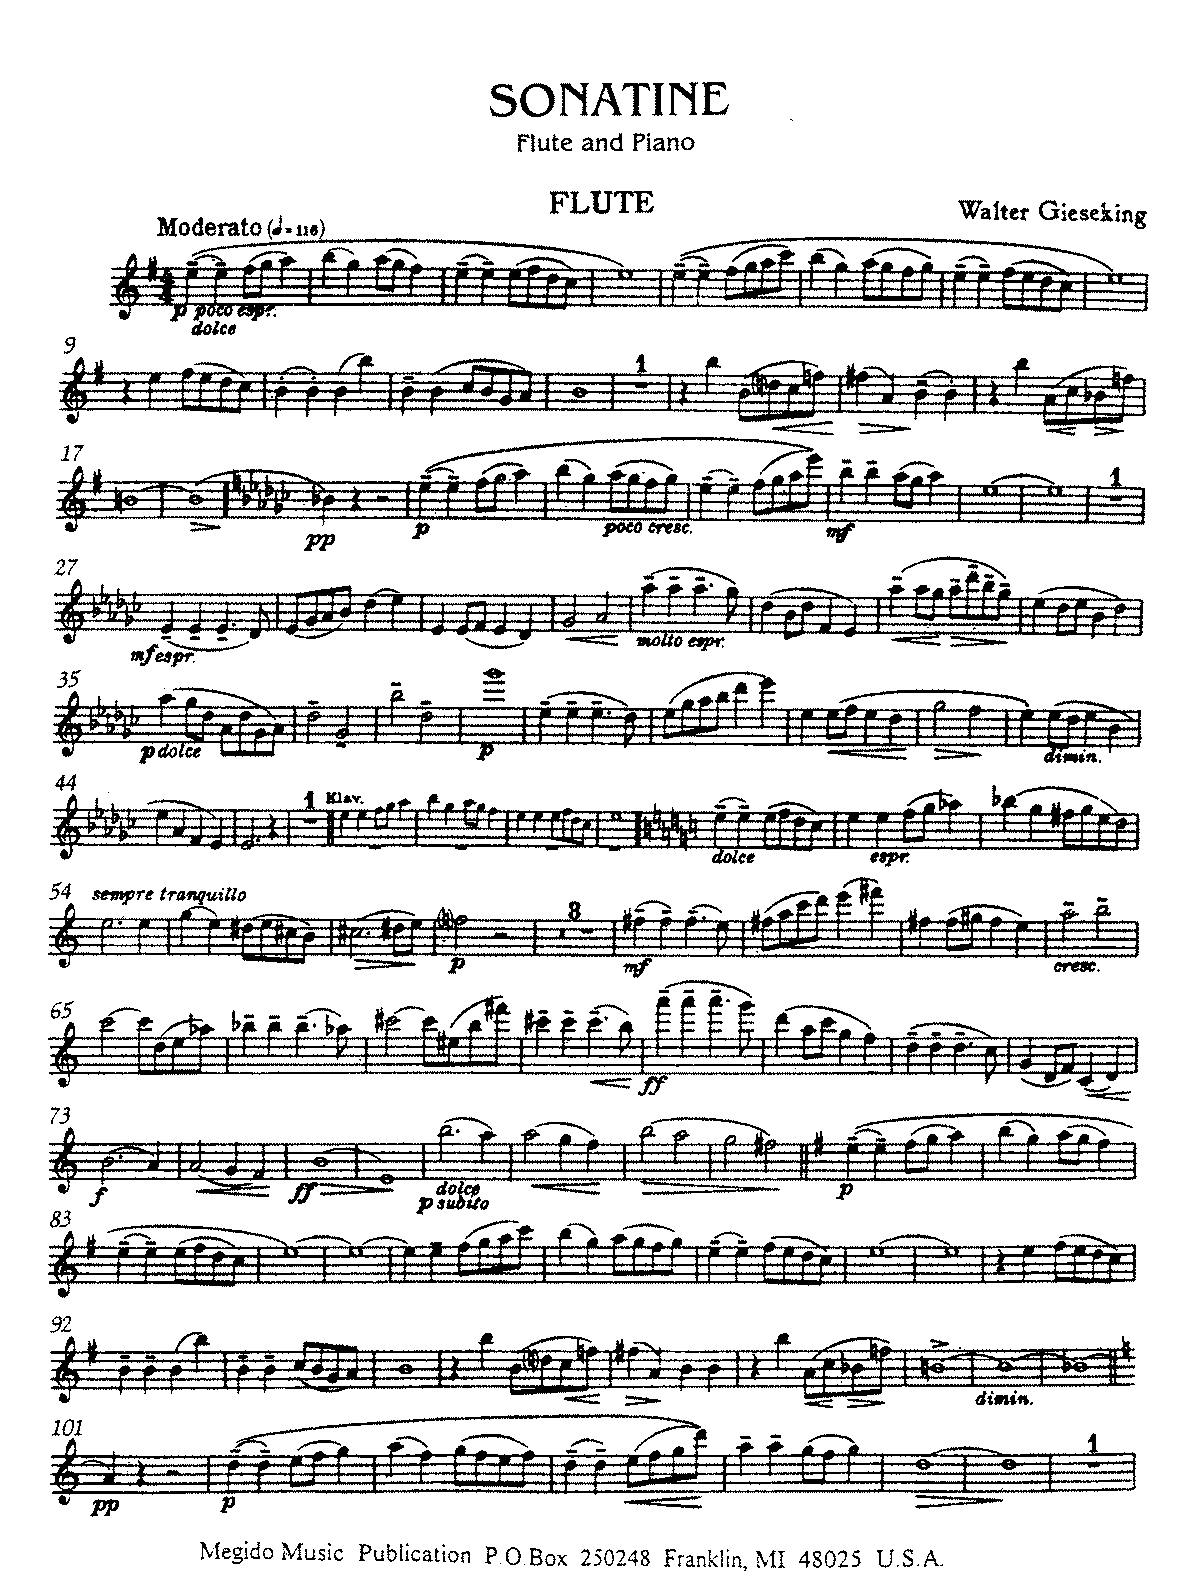 Gieseking - Sonatine for Flute and Piano.pdf